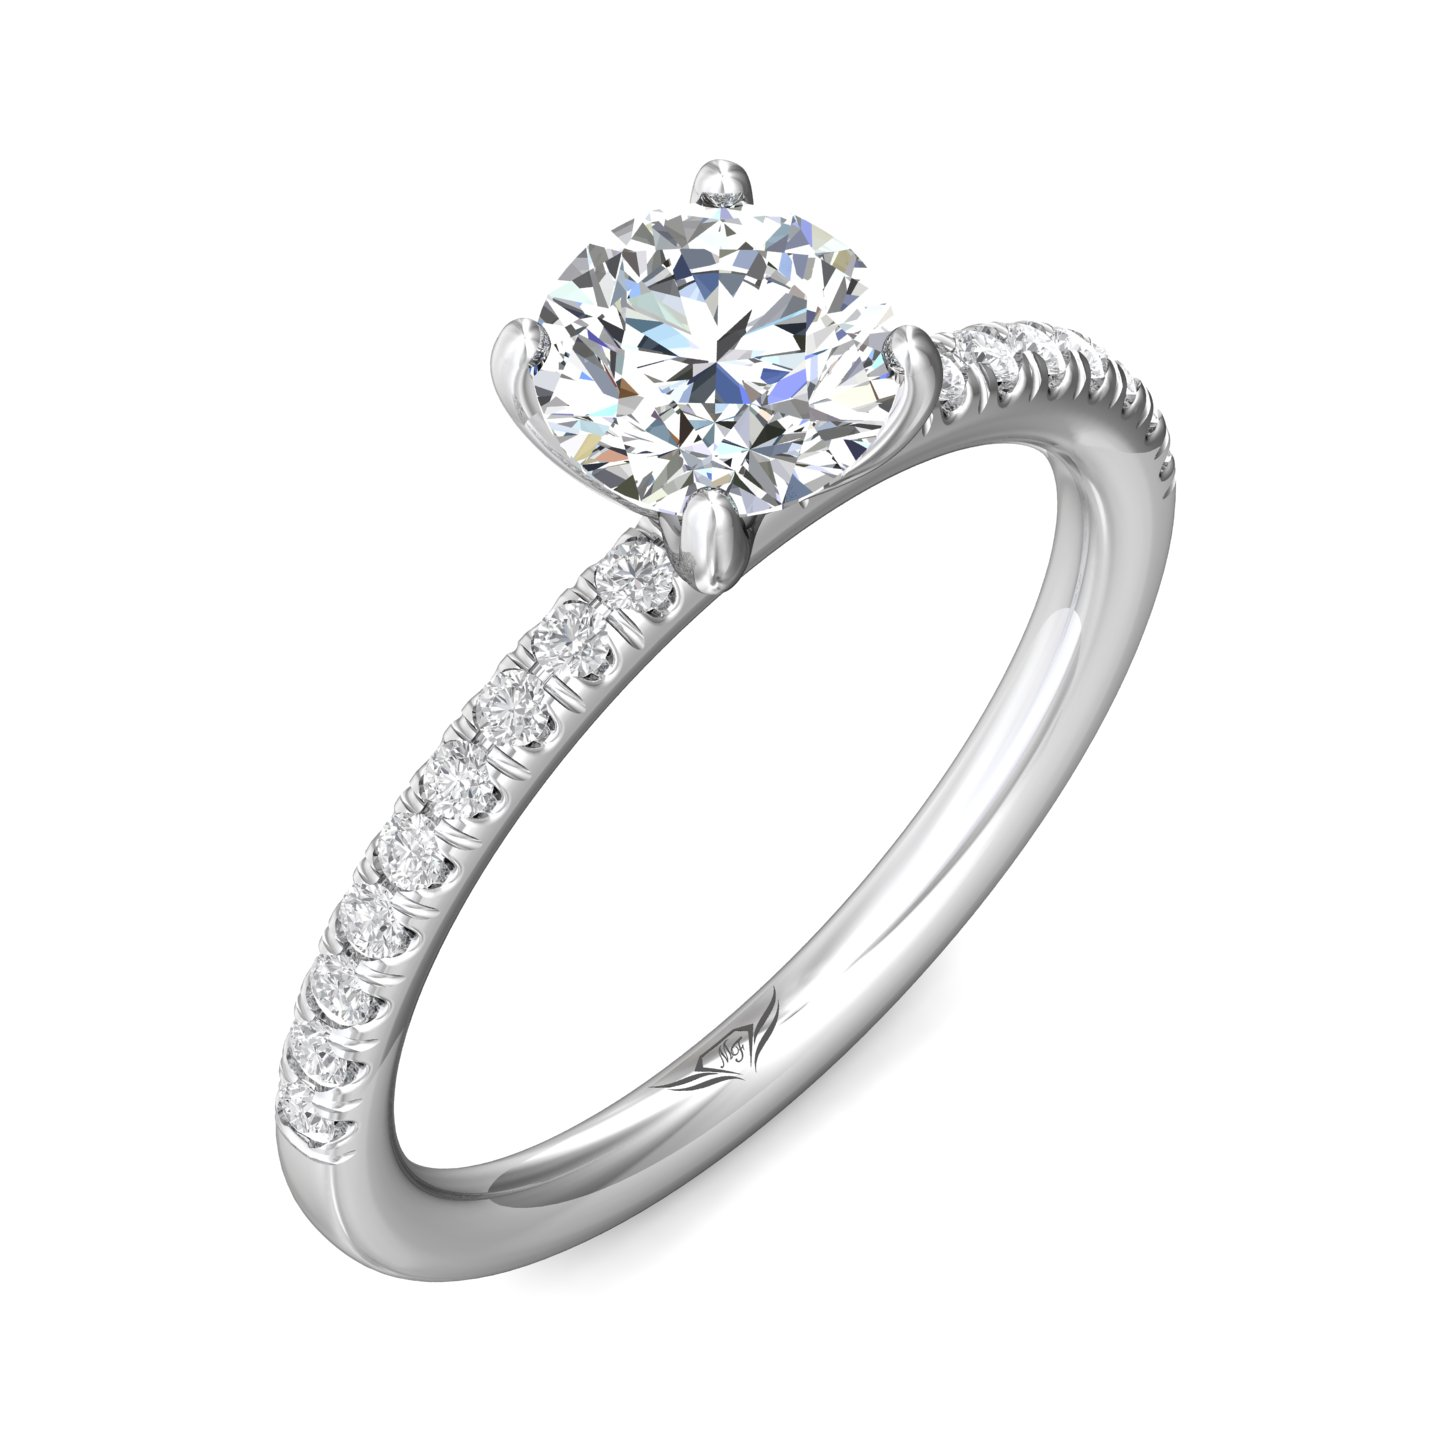 14K White Gold FlyerFit Micropave Engagement Ring Image 5 Grogan Jewelers Florence, AL